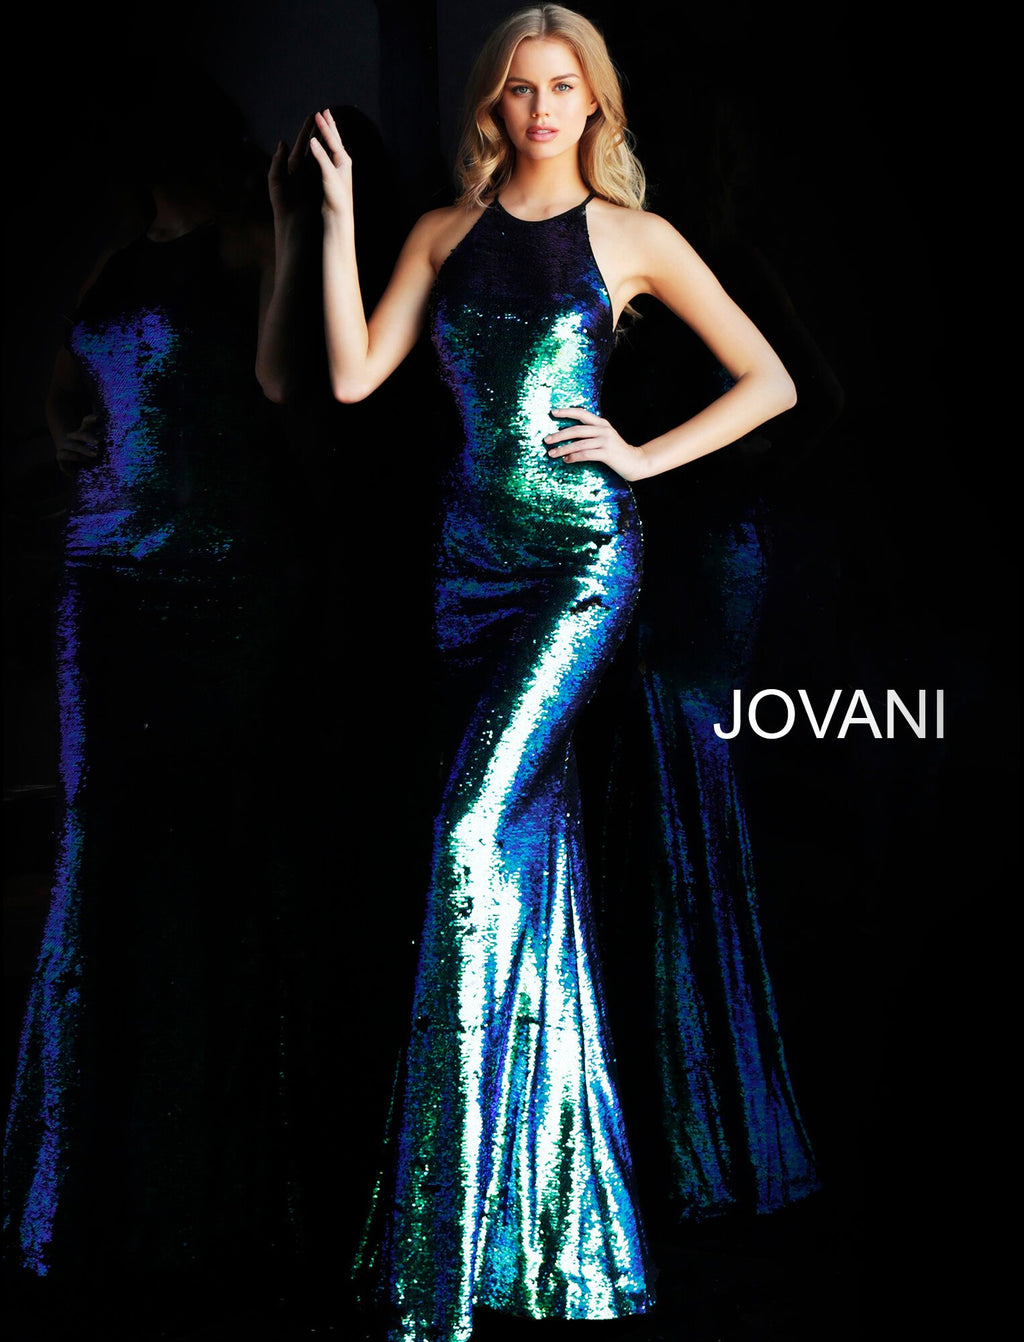 Jovani Multi Sequin Fitted Prom Dress - Gissings Boutique